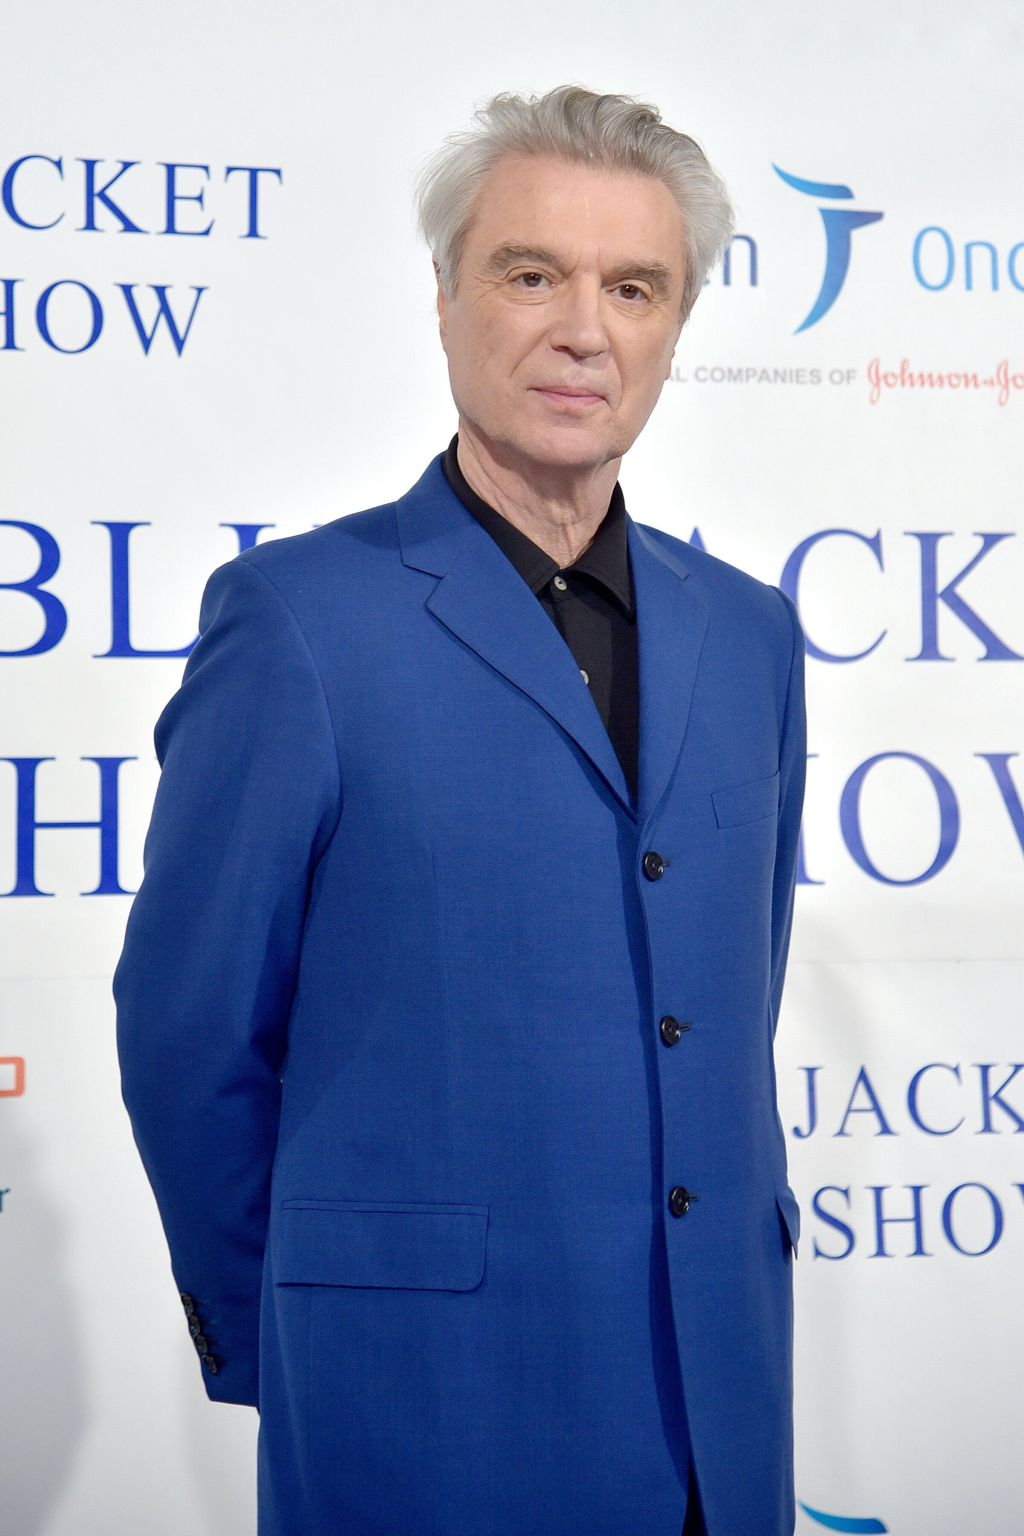 Talking Heads' David Byrne Apologises For Appearing In Blackface In Old Promo Clip